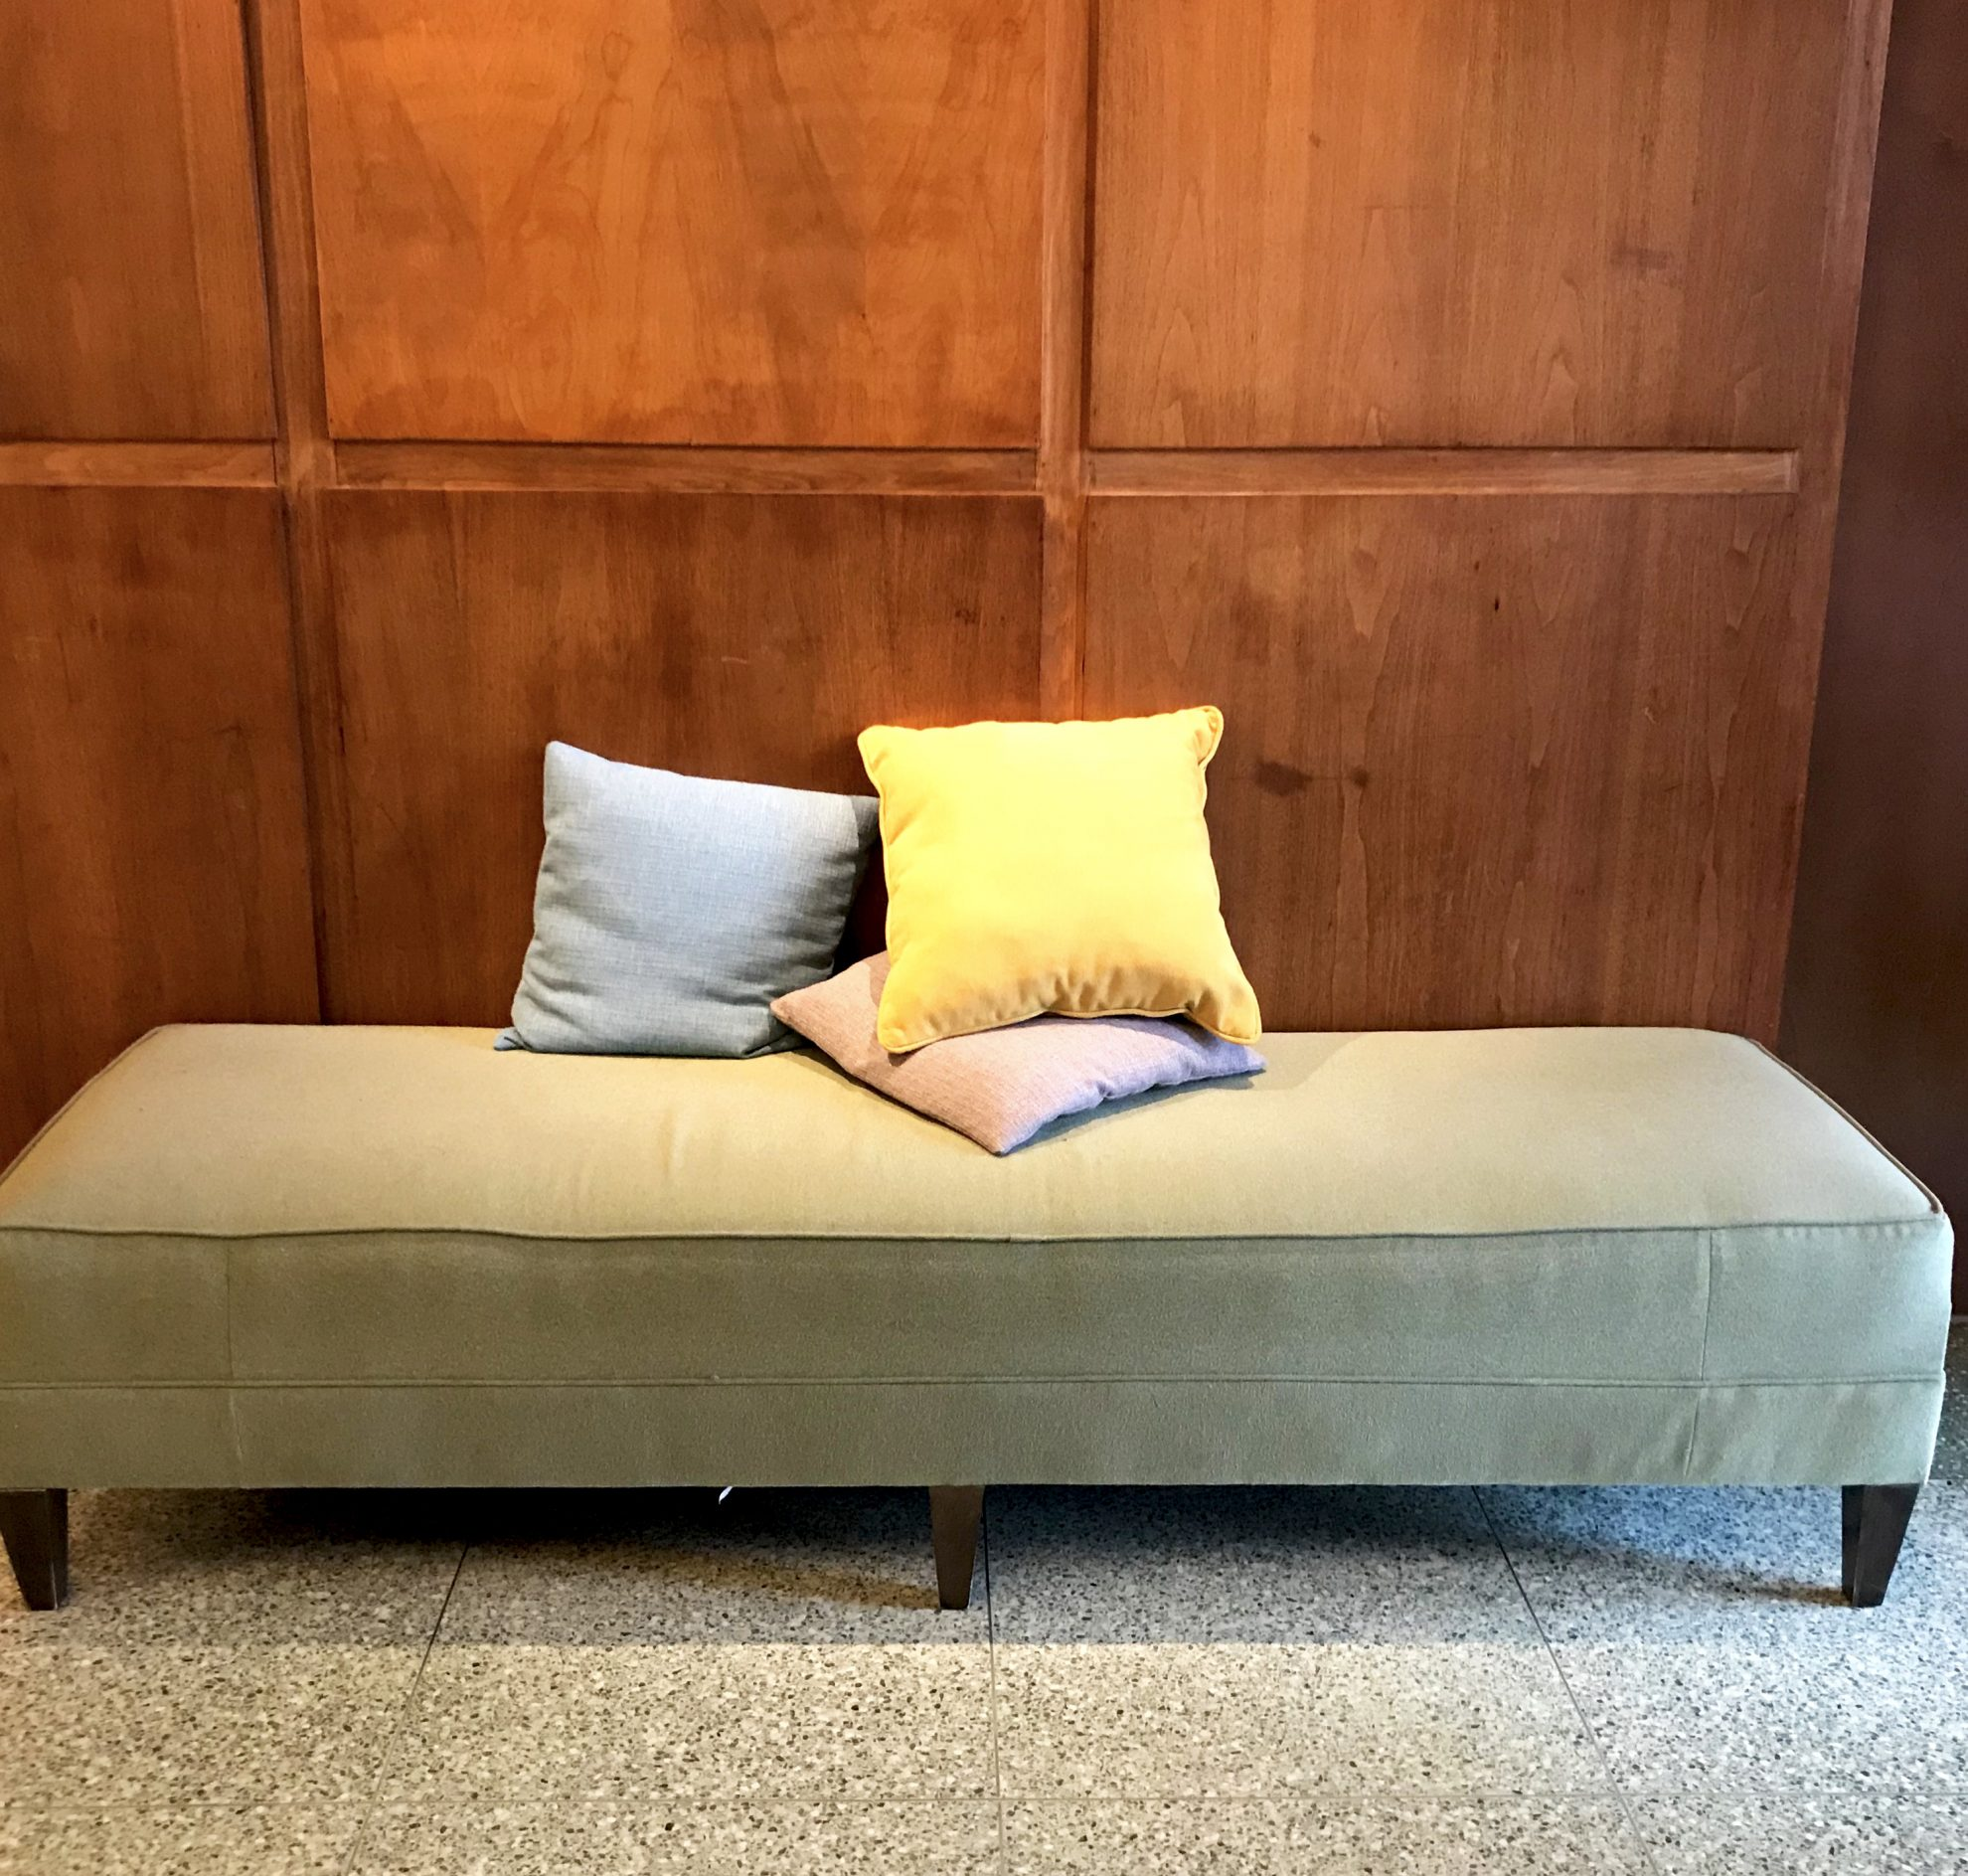 Bench and colorful throw pillows at Kripalu Center for Yoga and Health